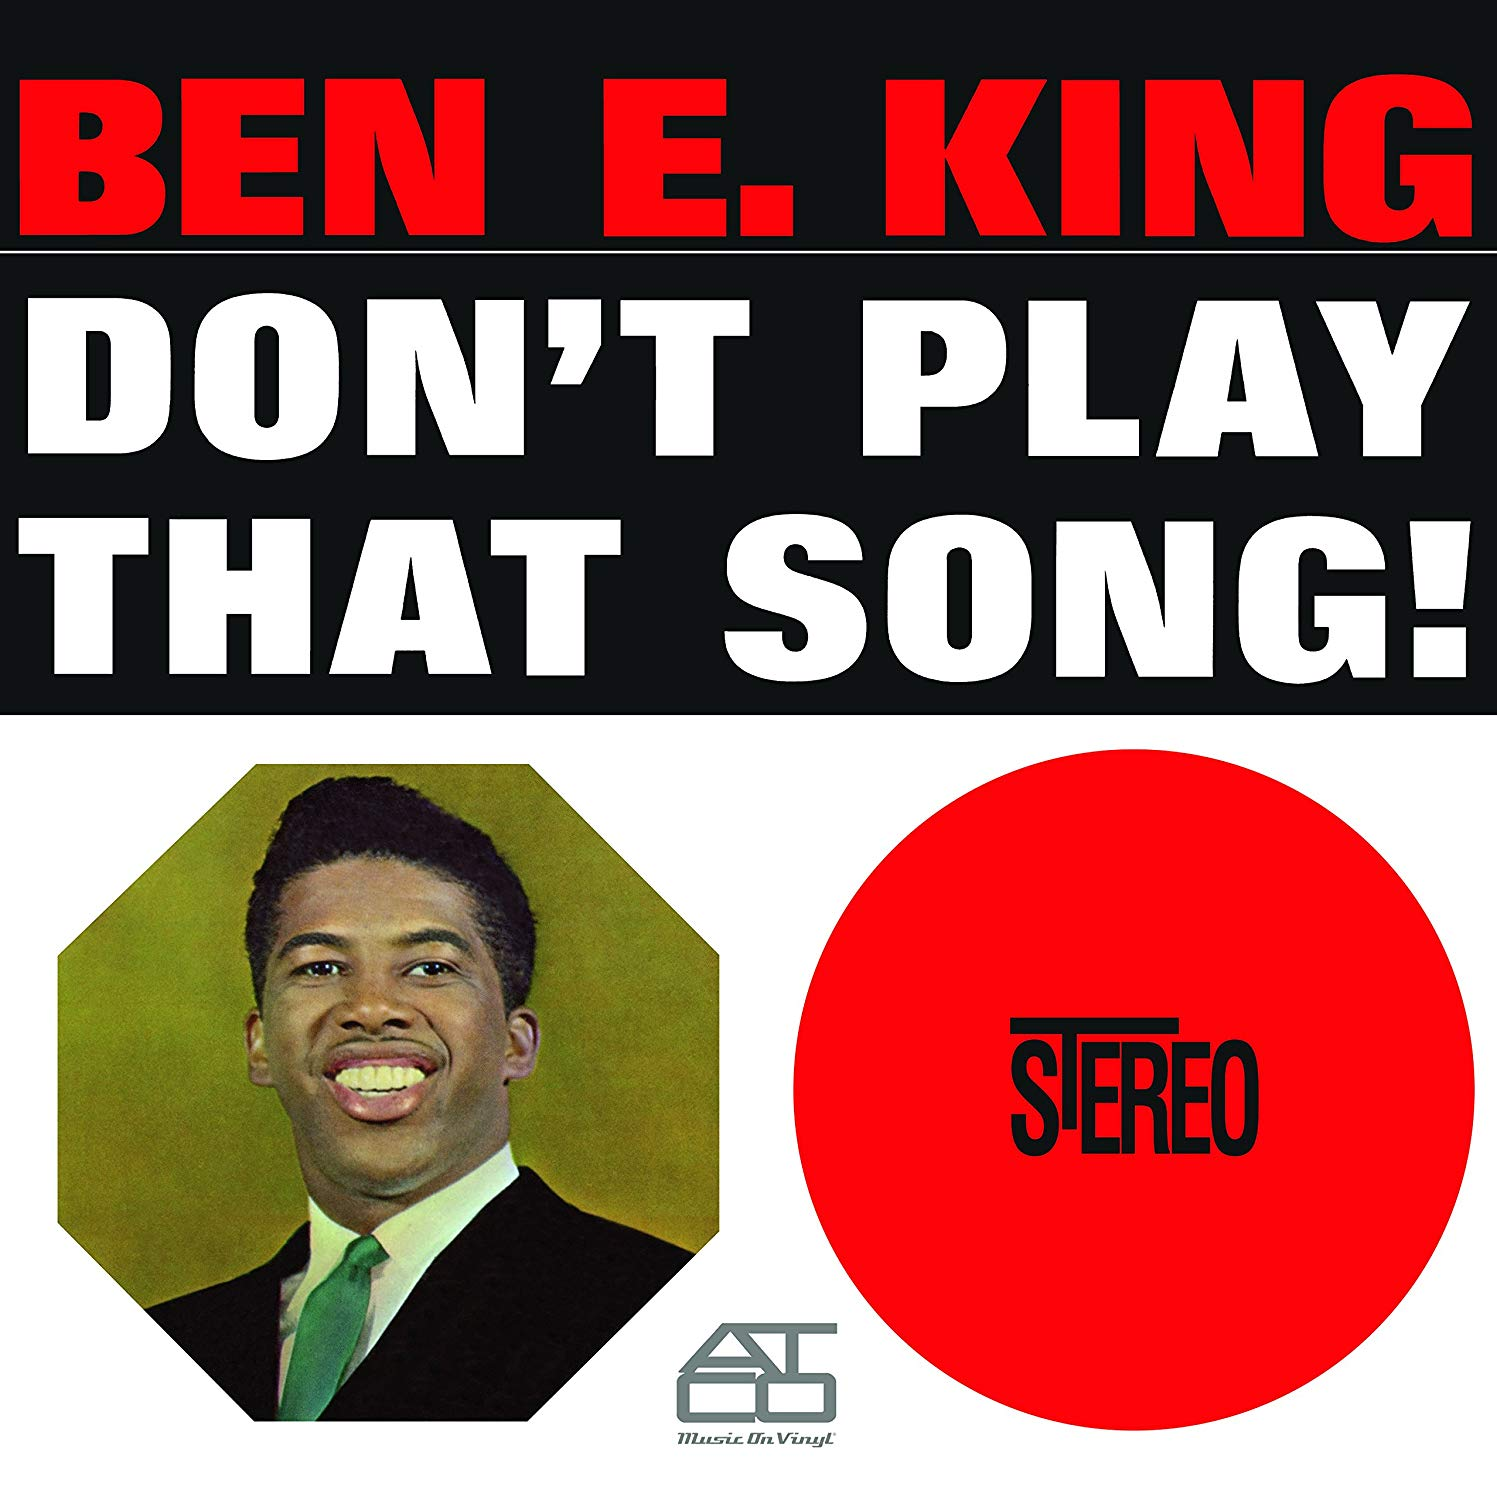 Ben E King - Don't Play That Song!